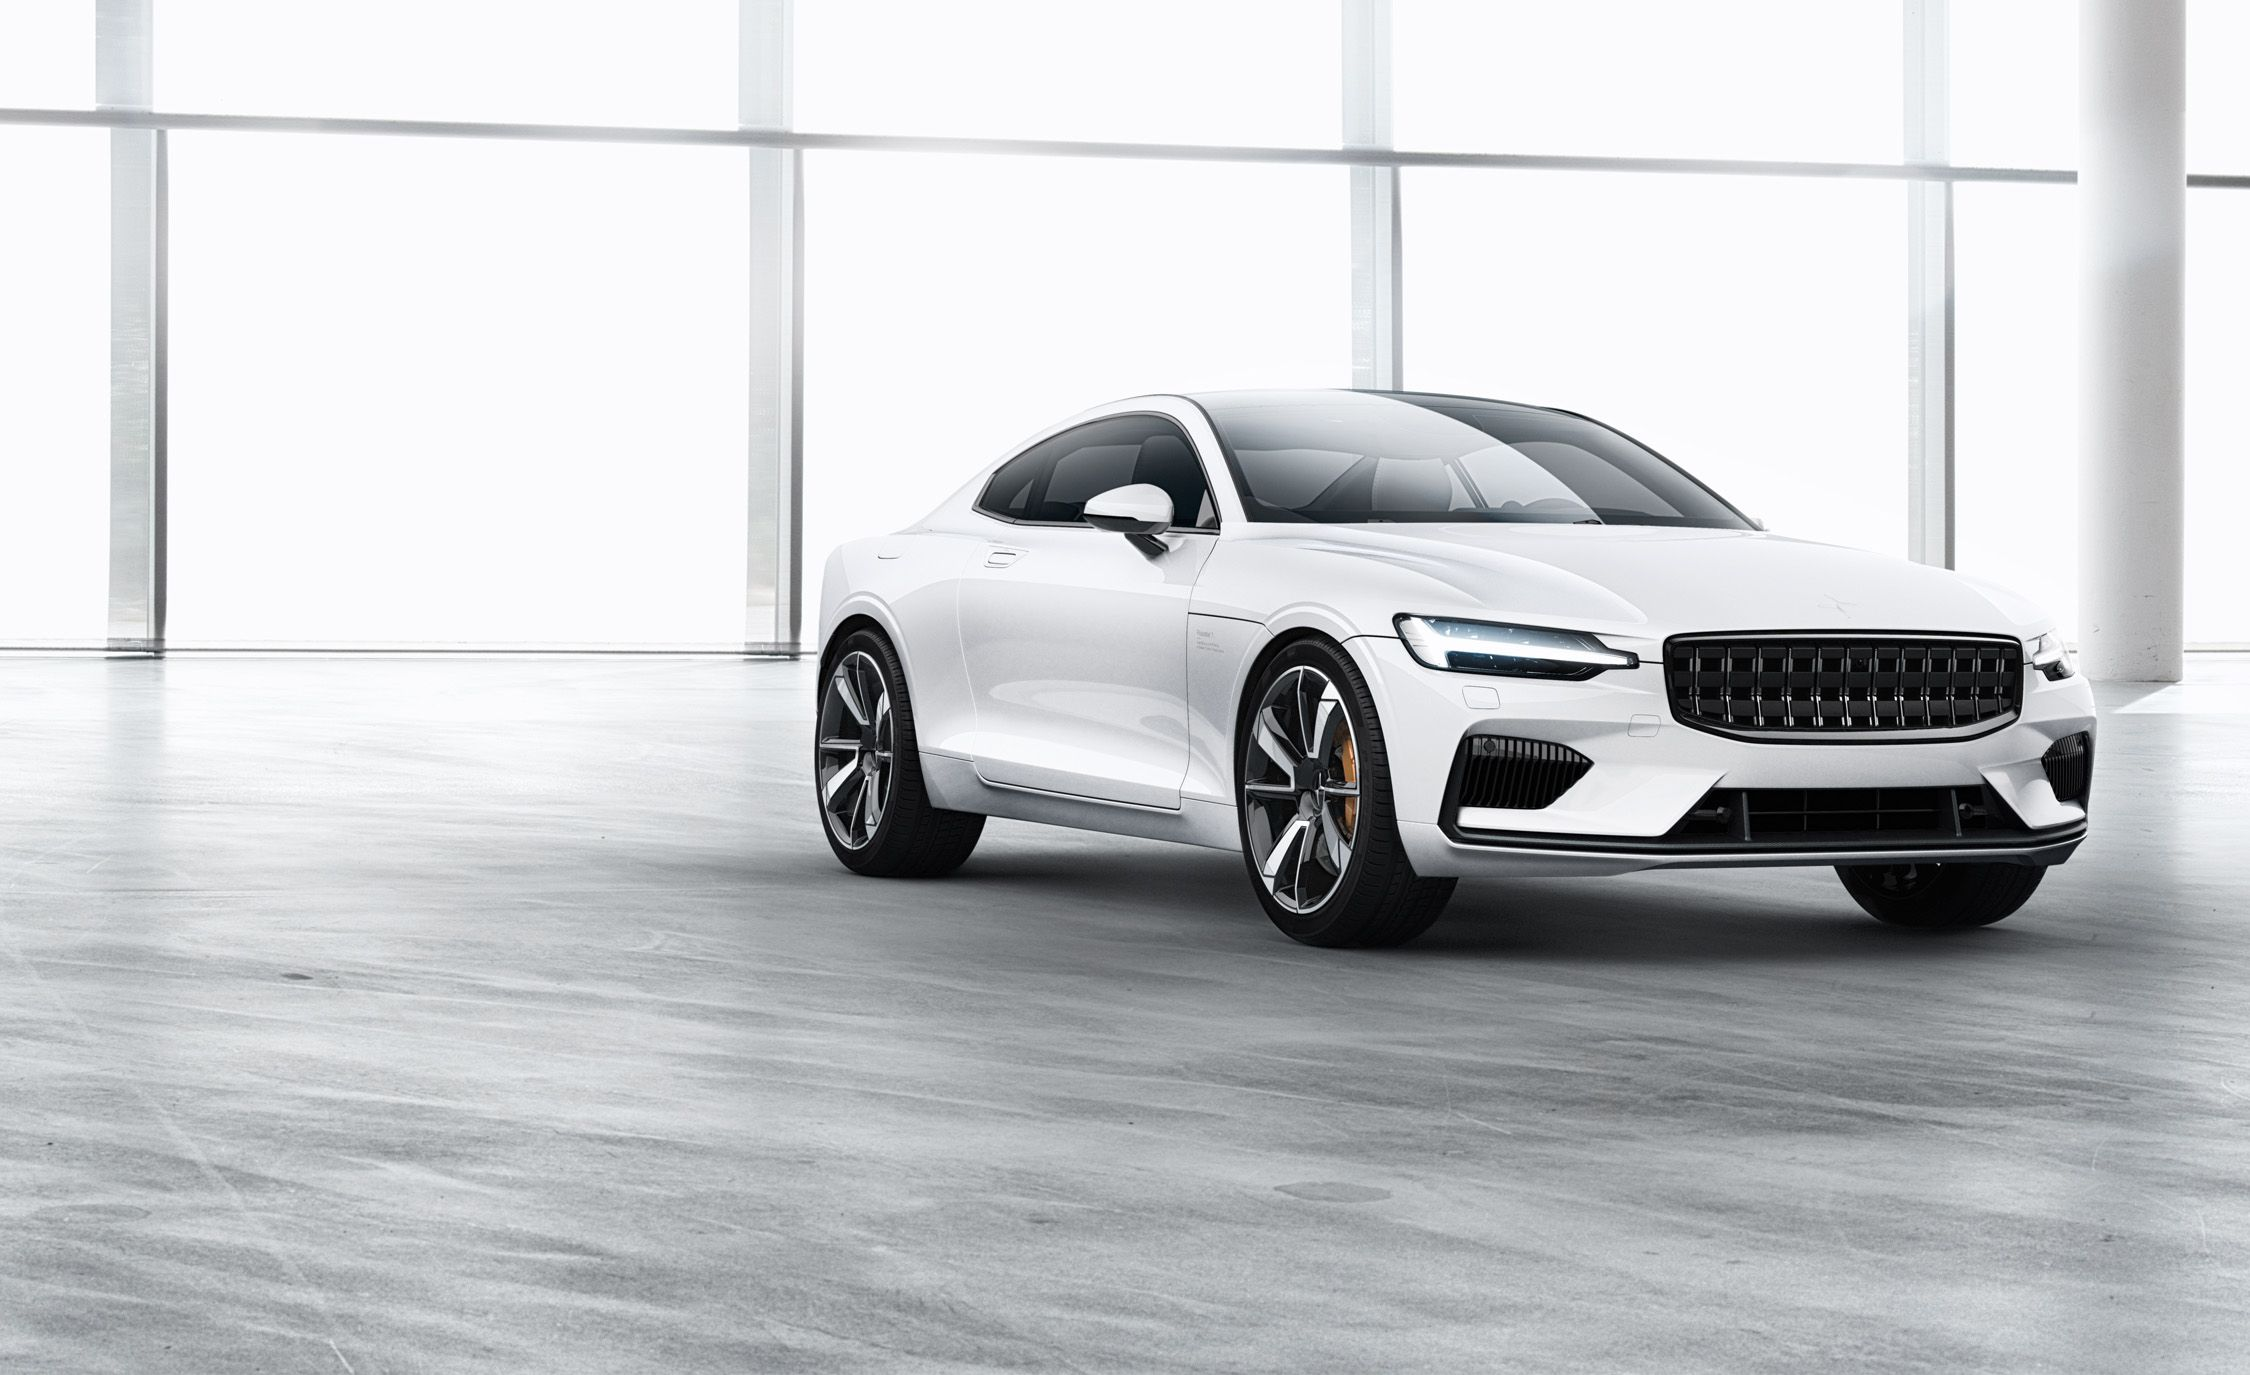 2020 Polestar 1: The S90 Coupe Volvo Won't Build